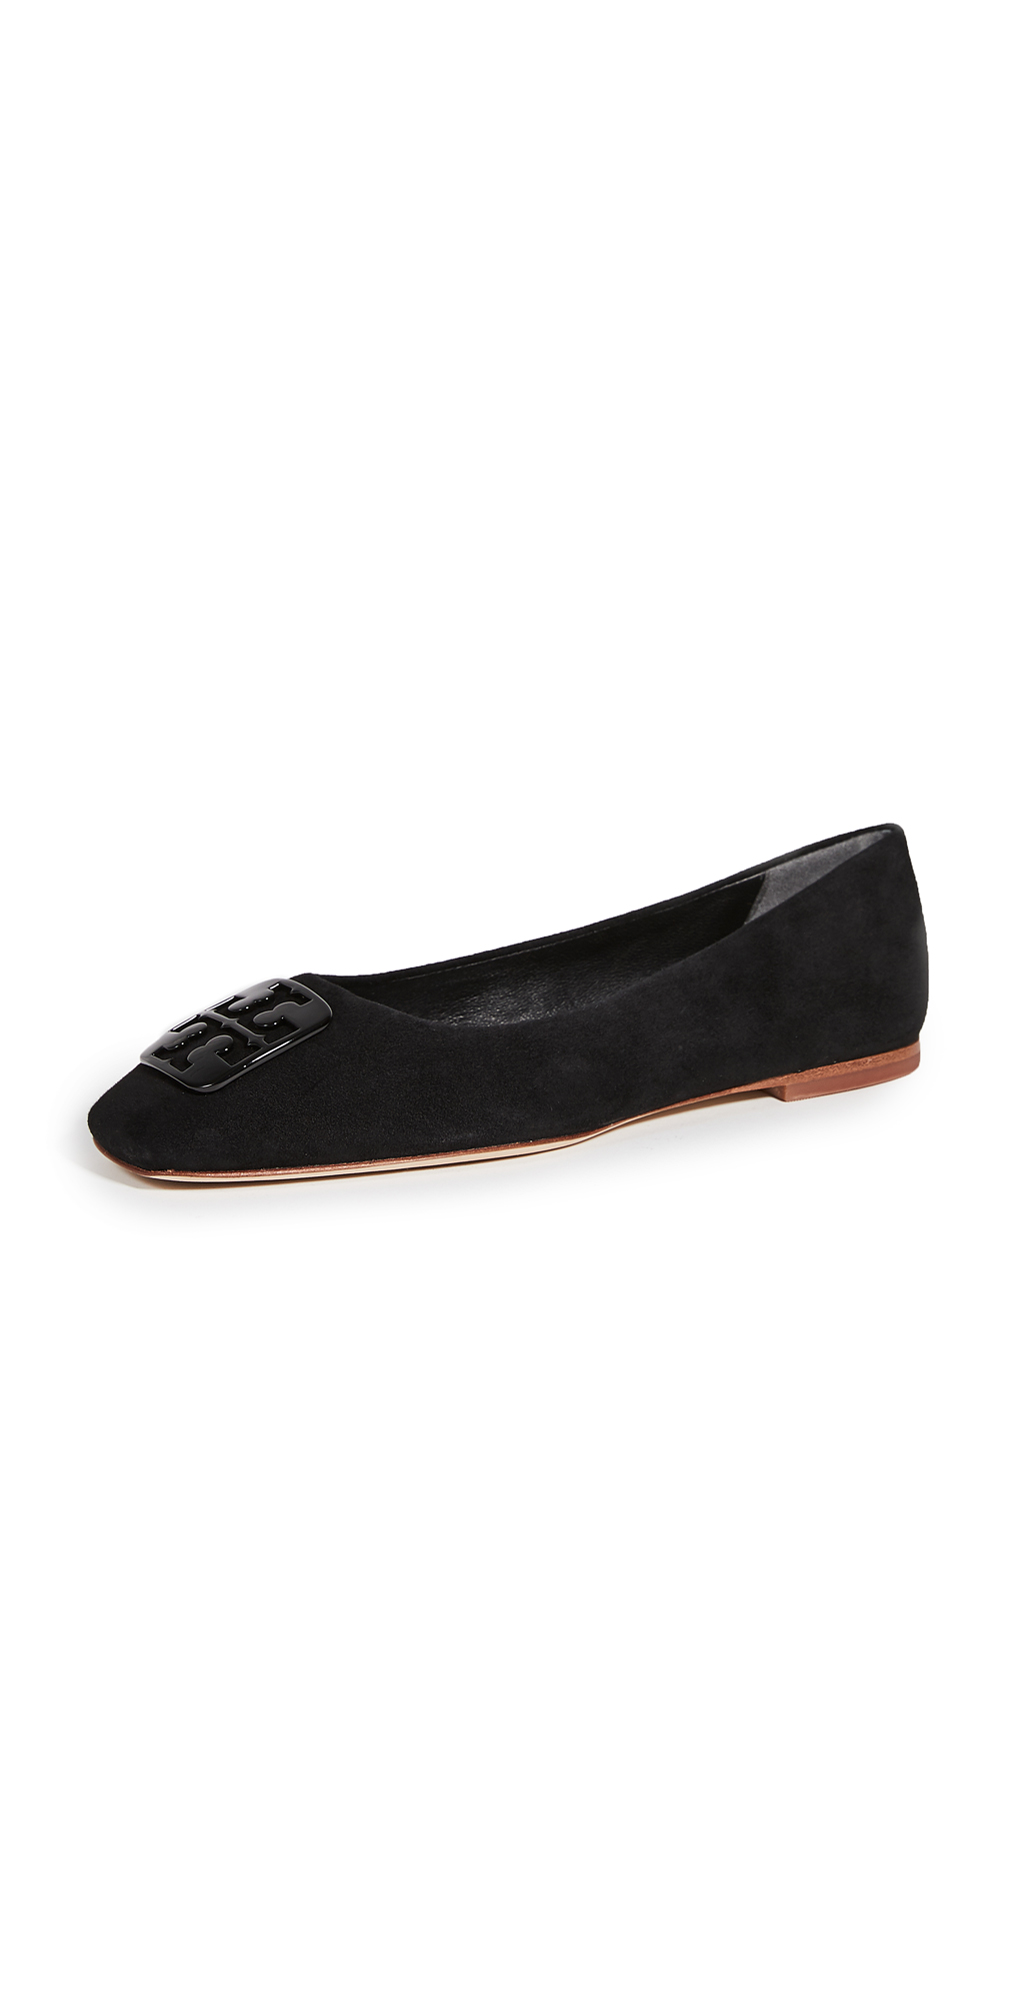 Tory Burch Square Toe Ballet Flats